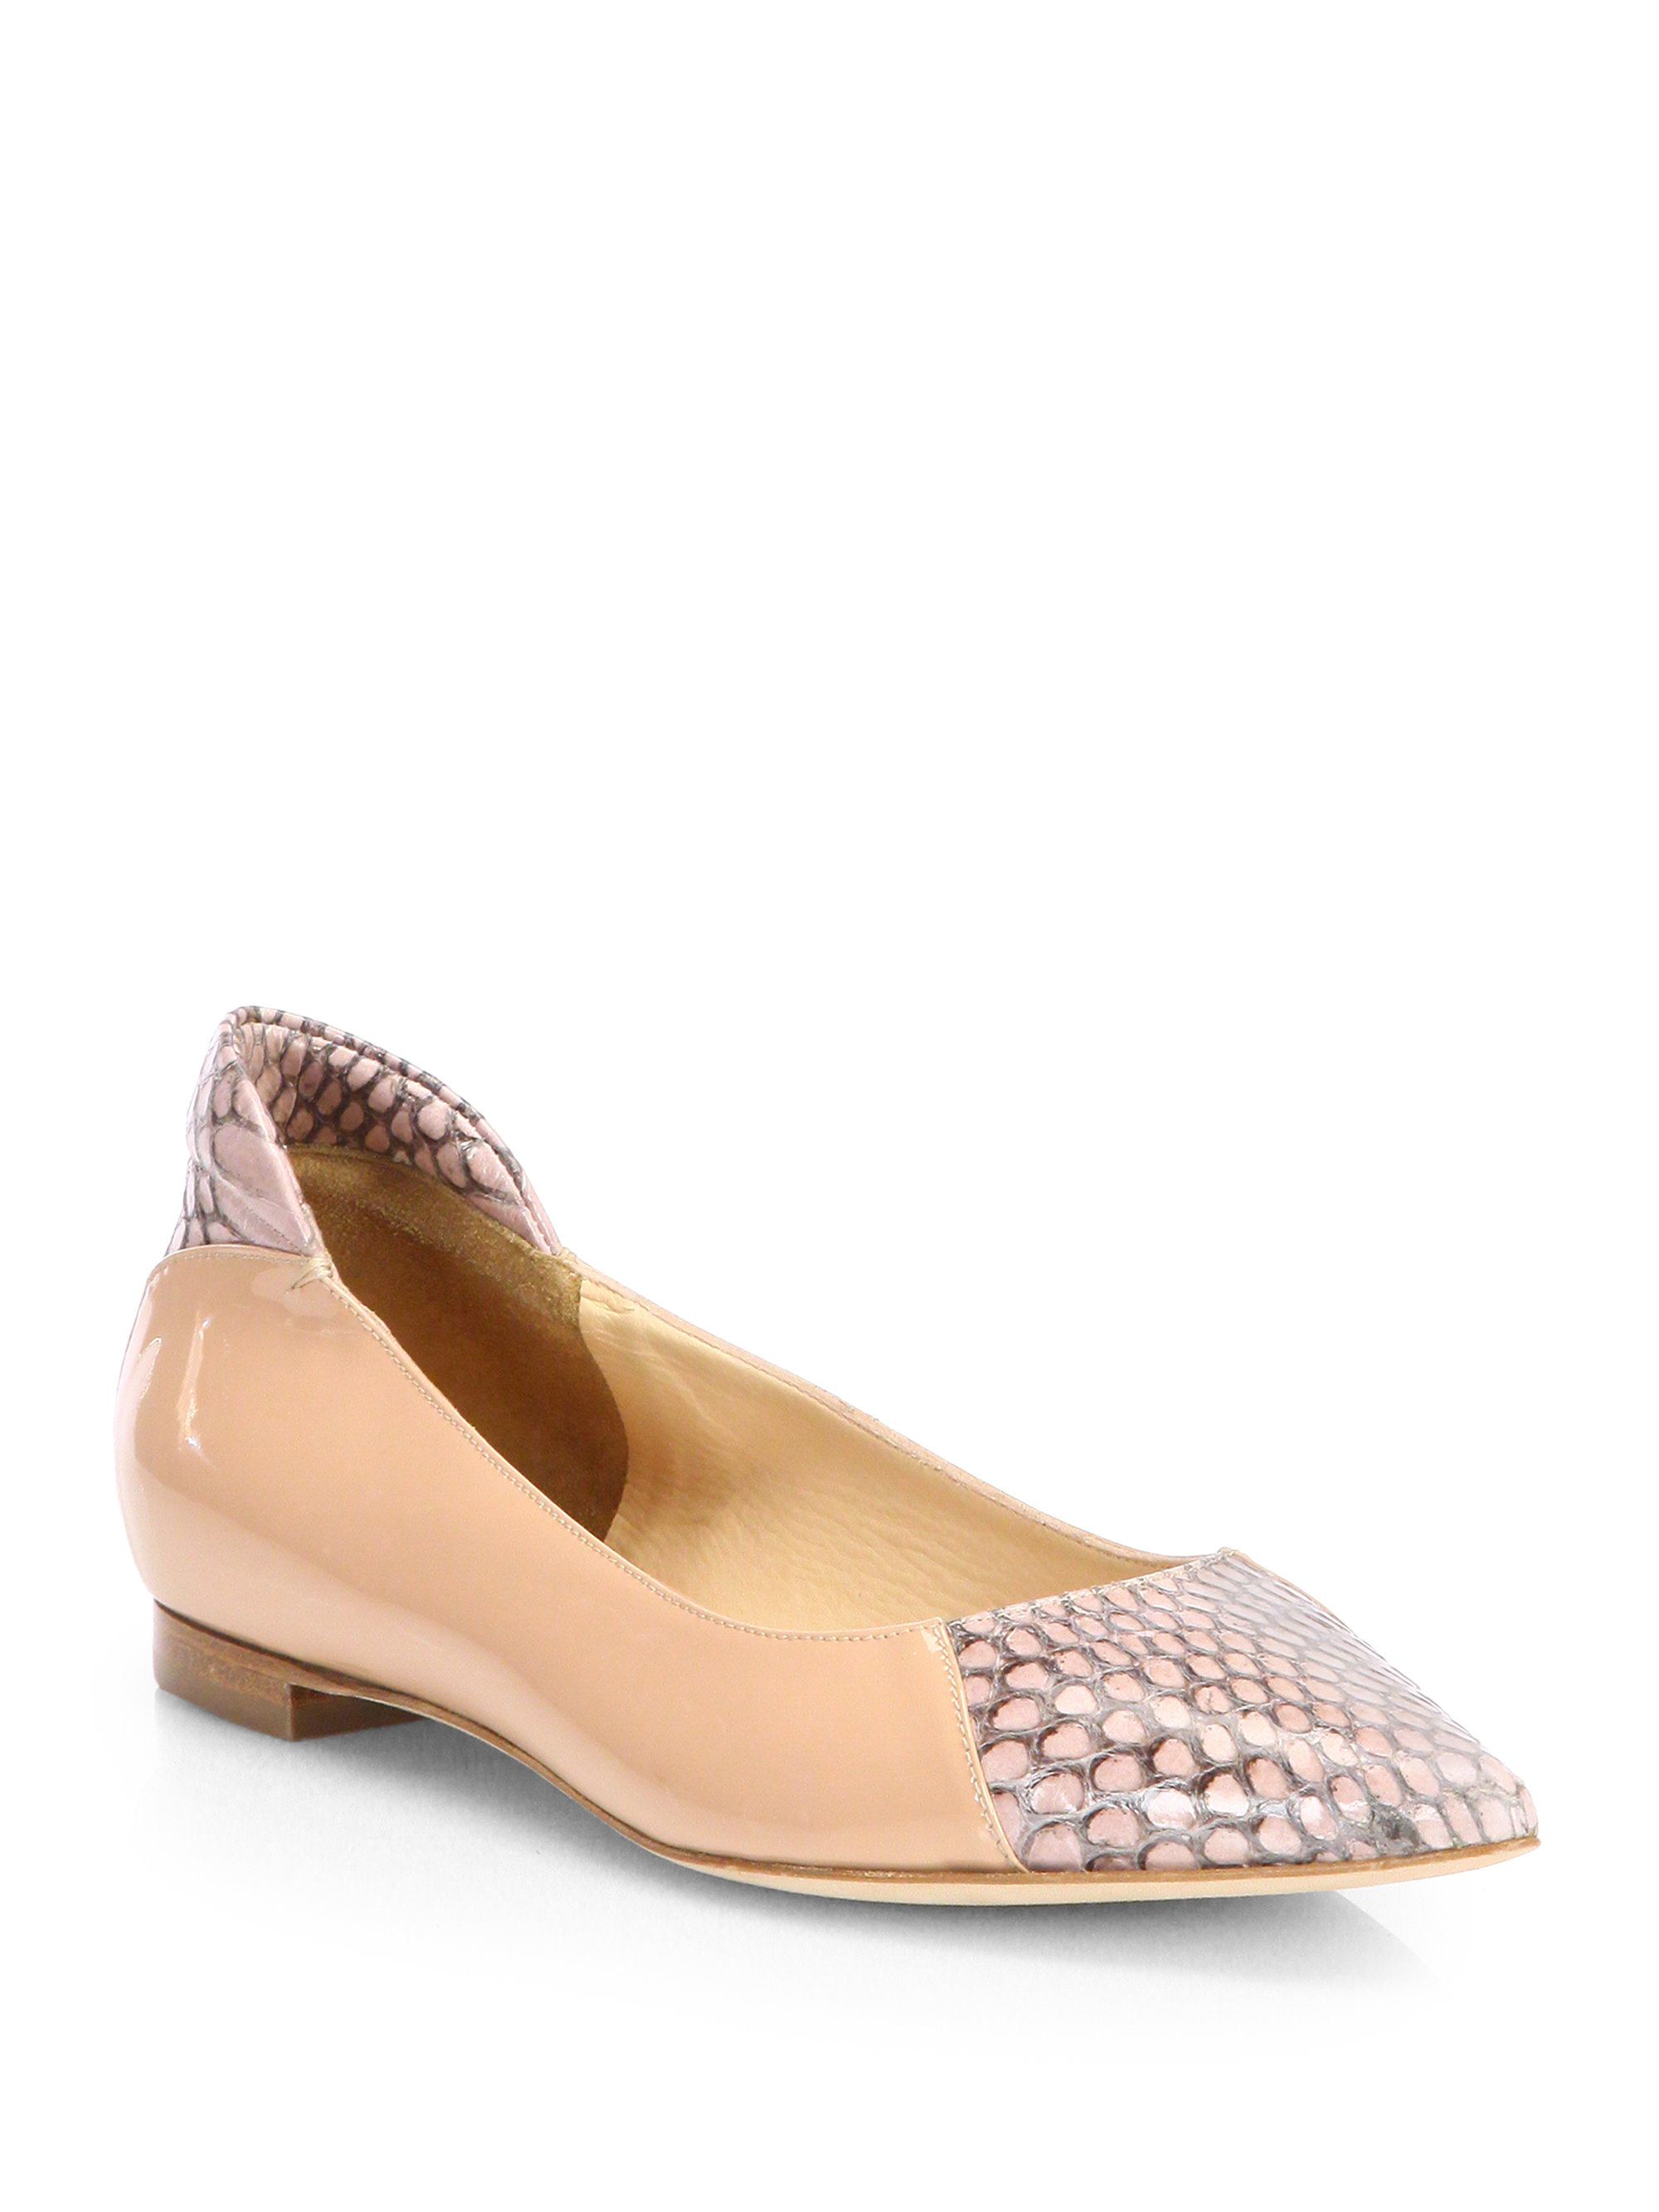 Reed Krakoff Snakeskin-Trimmed Academy Flats best place online buy cheap fashion Style discount reliable quality from china cheap mLw2NlcR